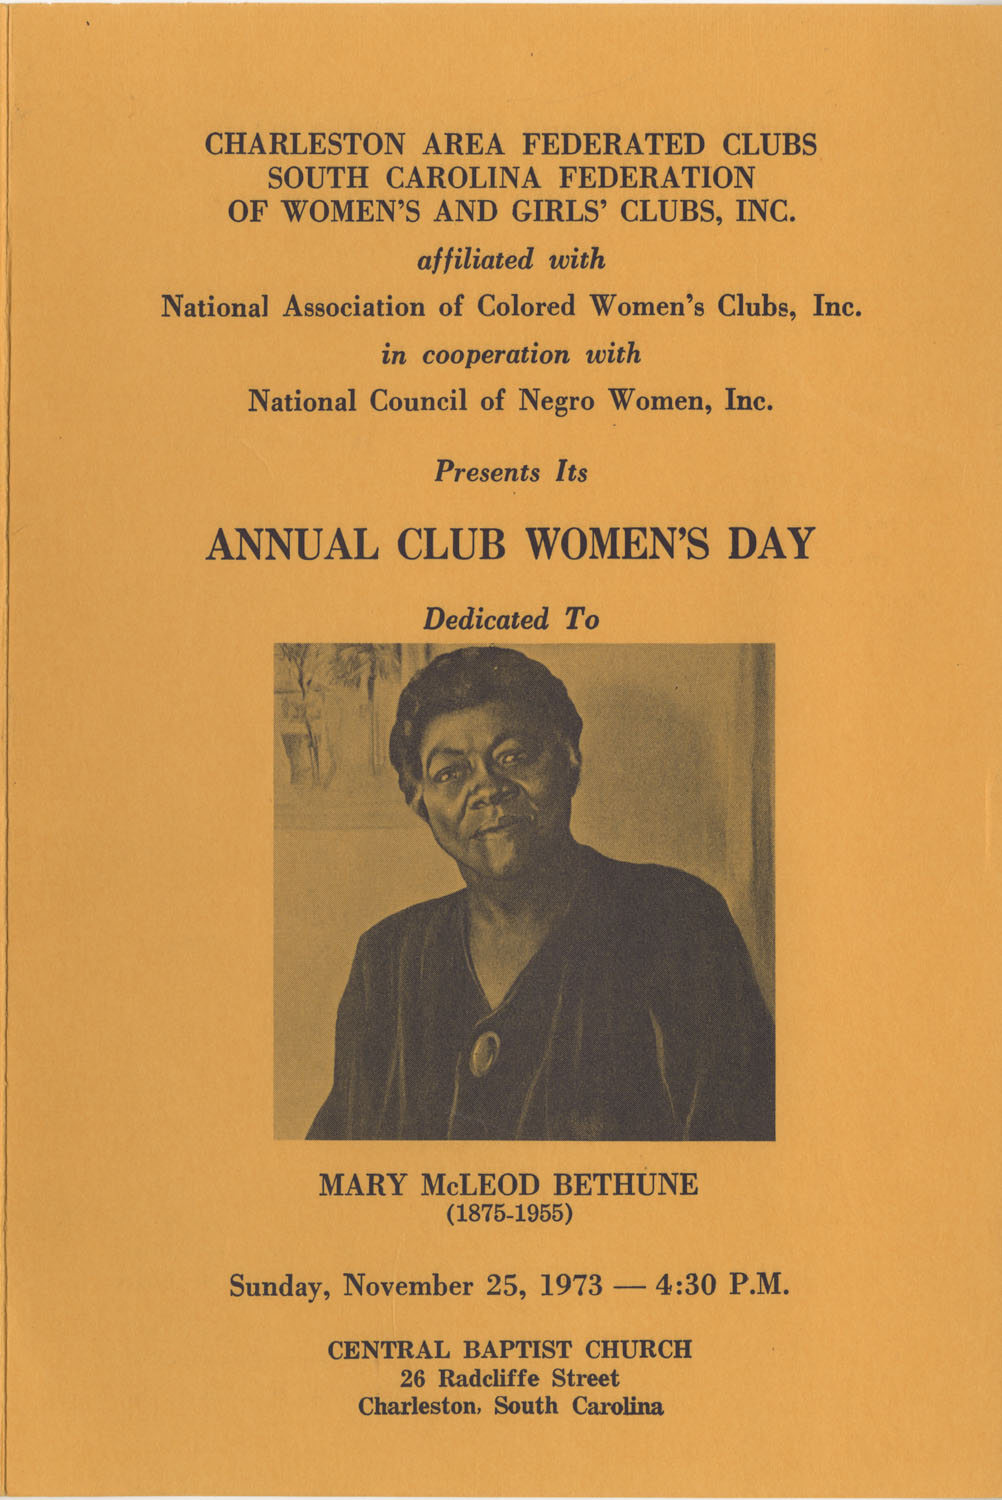 Charleston Area Federated Clubs of South Carolina Federation of Women's and Girl's Clubs, Annual Club Women's Day Program, November 25, 1973